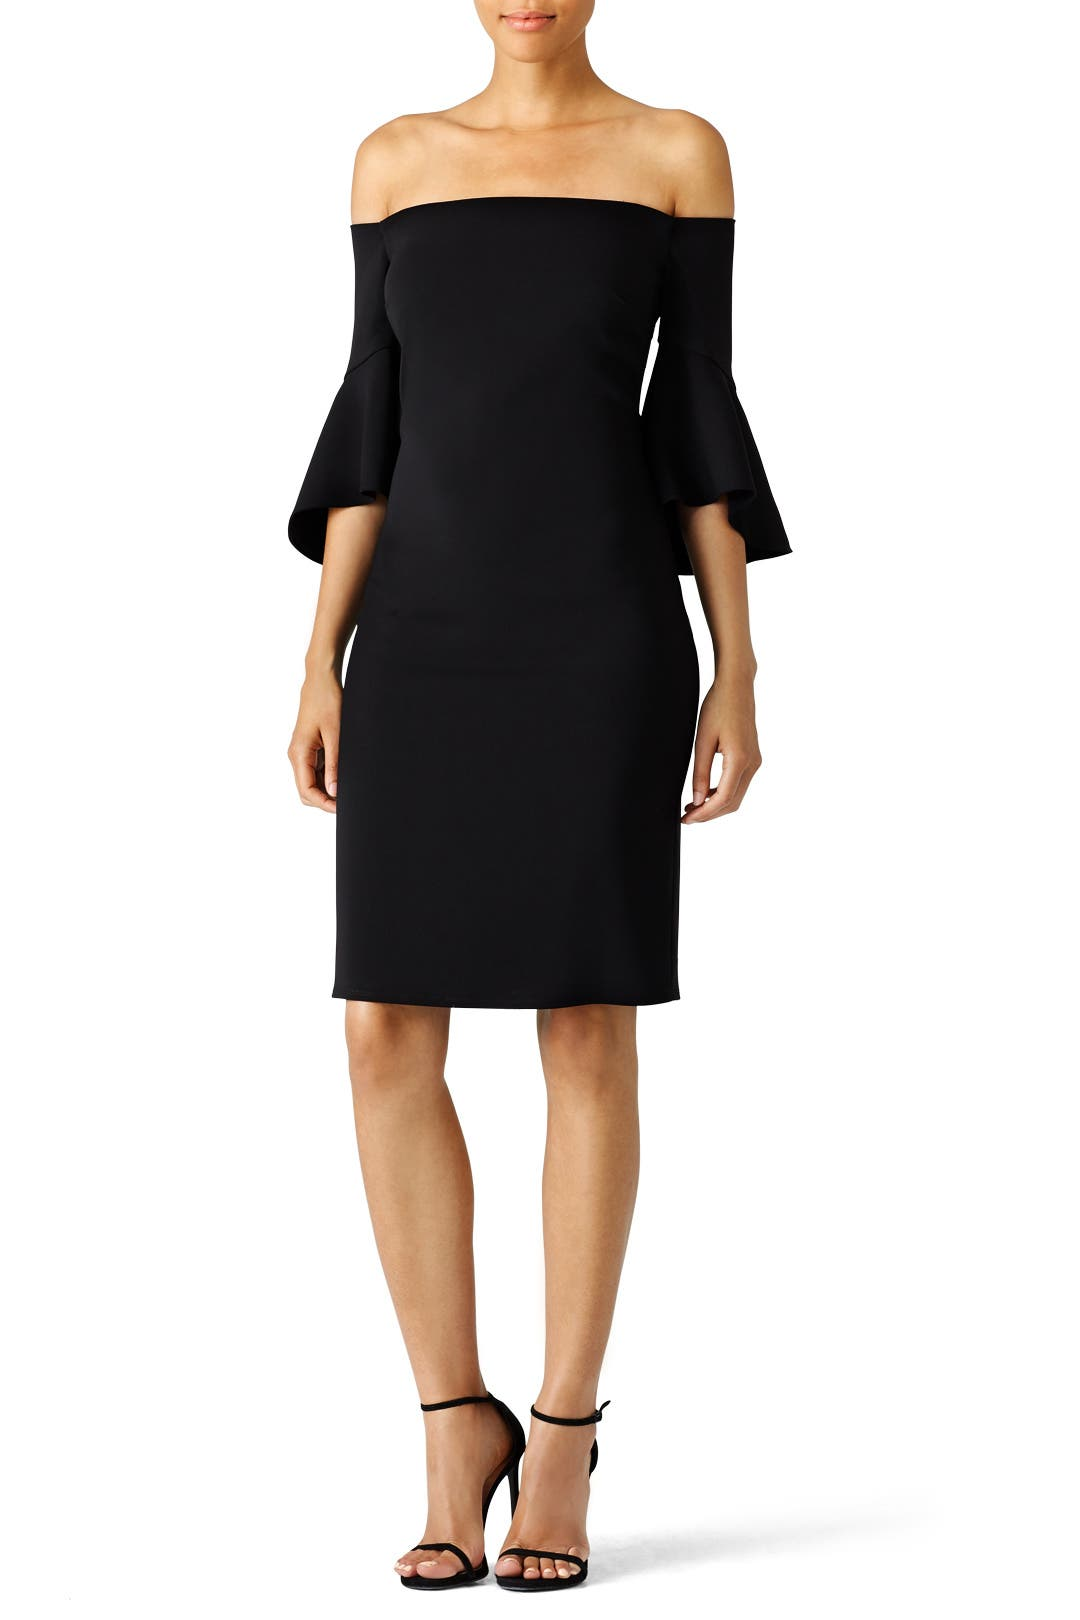 Black Bell Sleeve Cocktail Dress By Laundry By Shelli